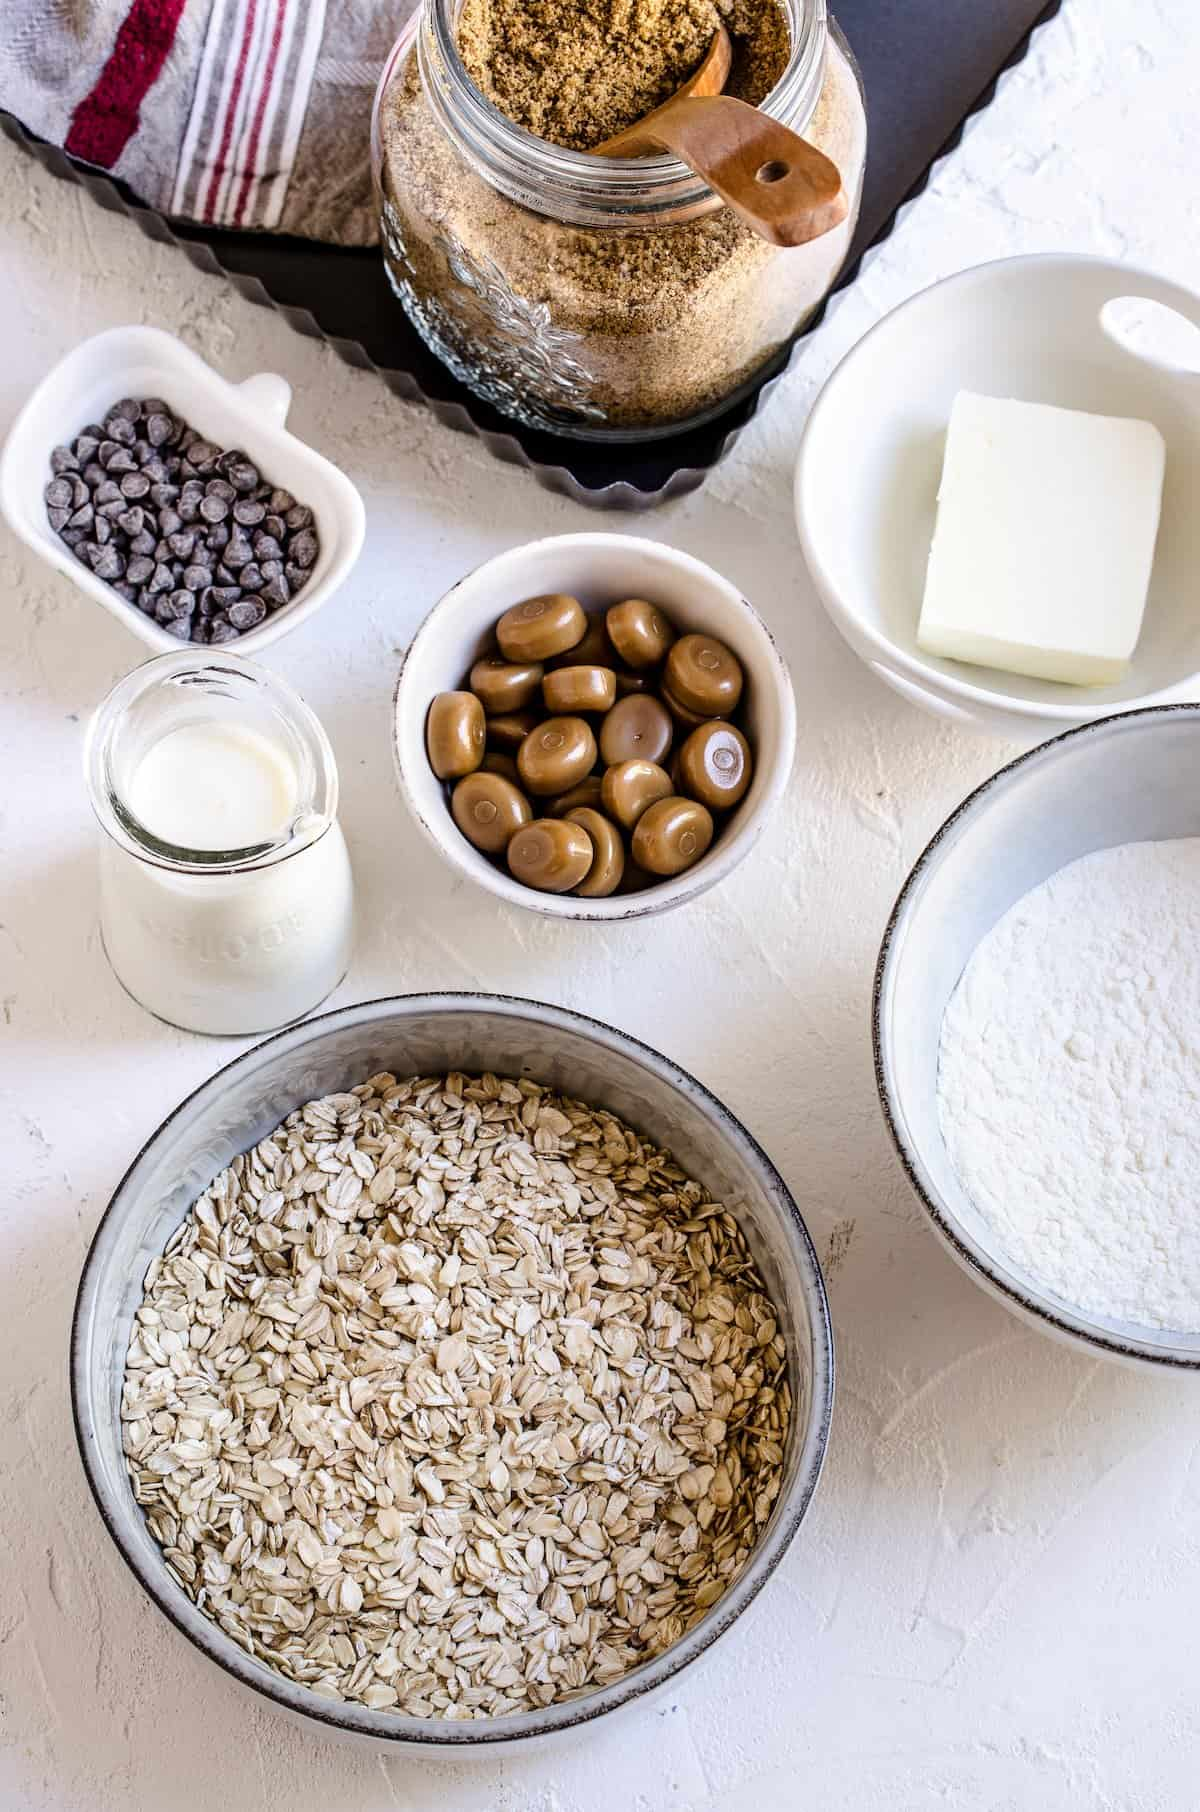 Oats, caramels, sugar and other carmelita ingredients in small bowls